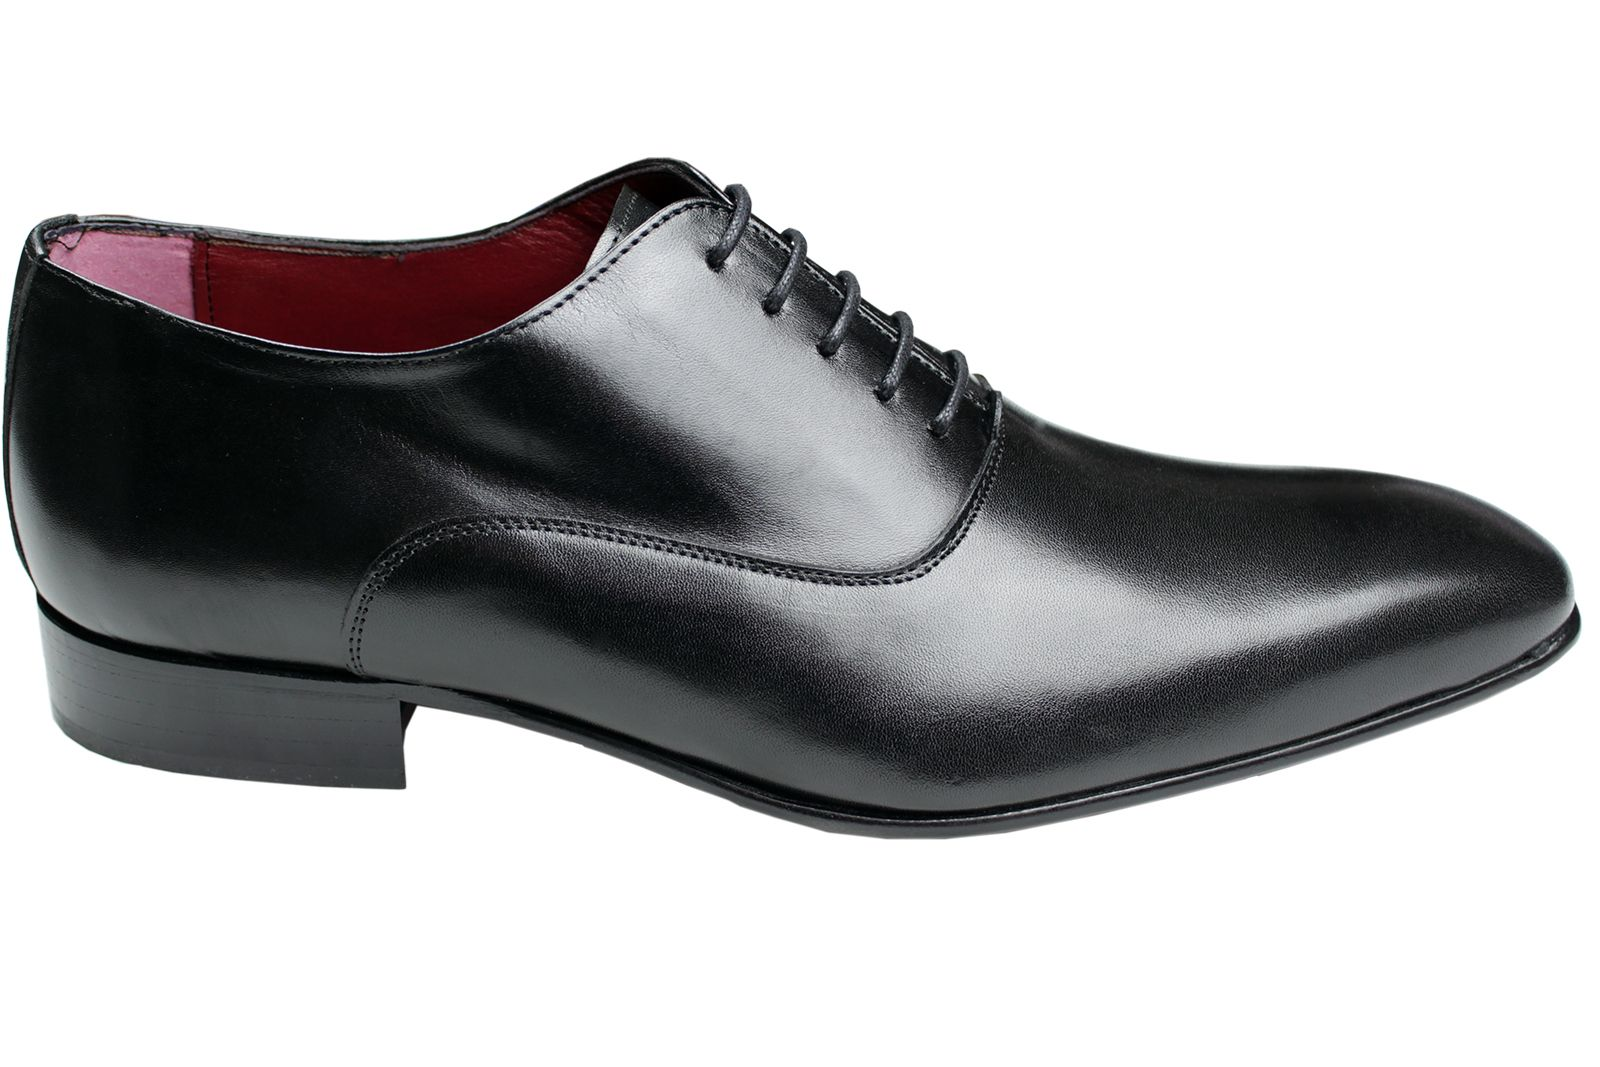 mens dress shoes cheap - Dress Yp